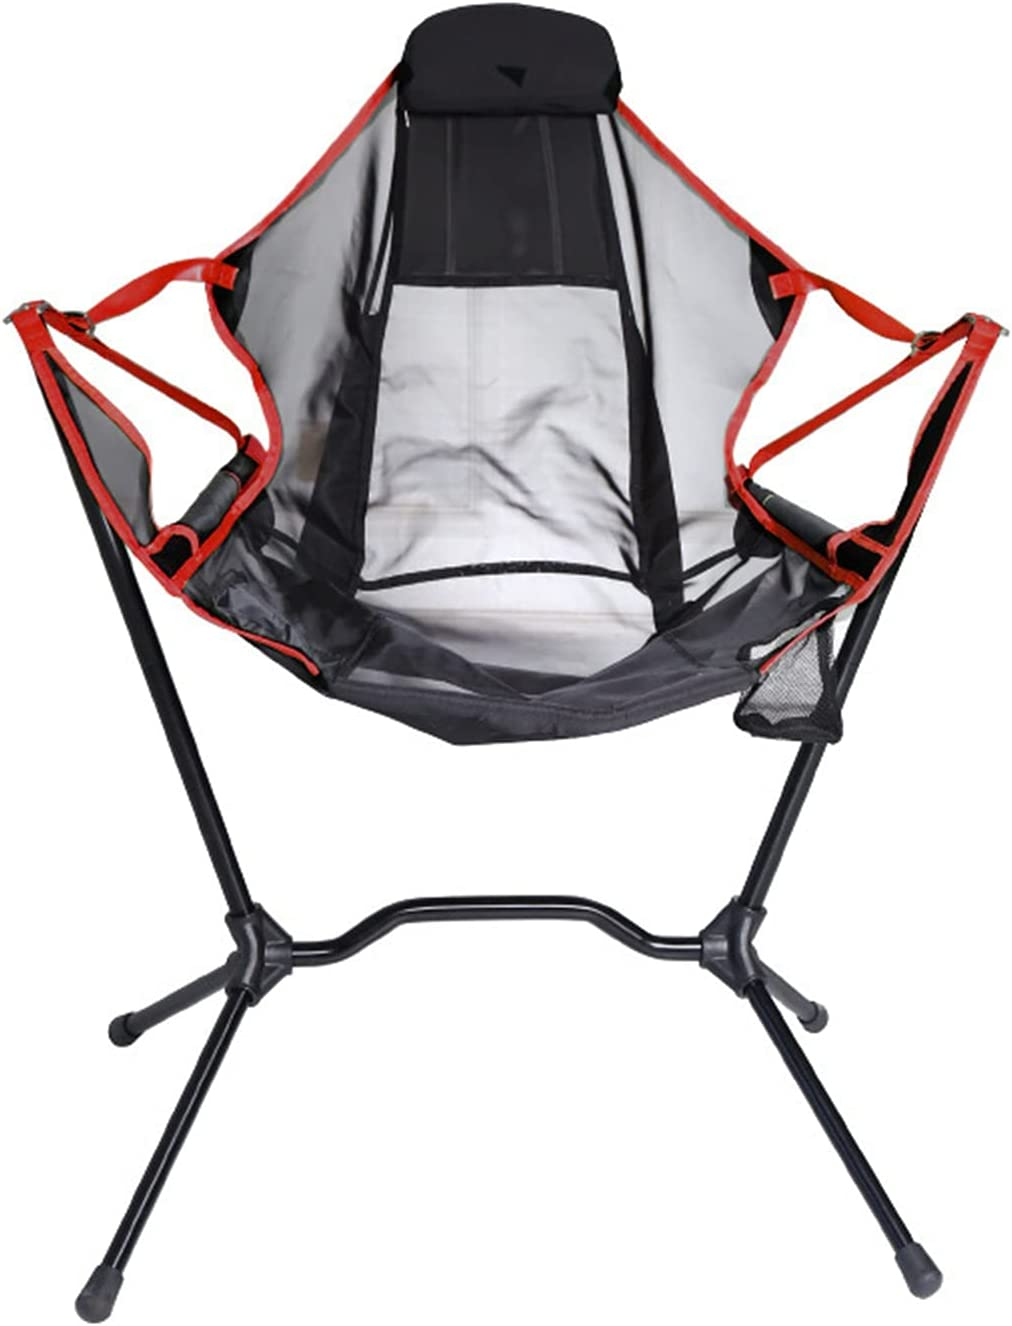 Superdada Outdoor Rocker Unisex-Adult Chair Camp Easy-to-use Porta Seattle Mall Rocking